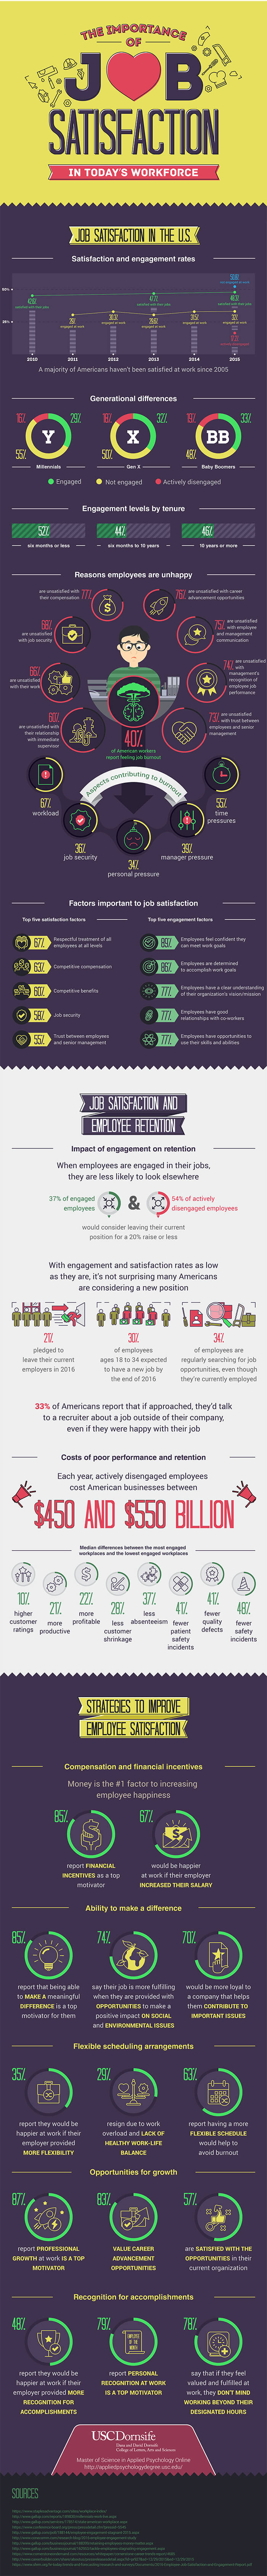 How Lack of Job Satisfaction Can Imbalance Productivity - Infographic